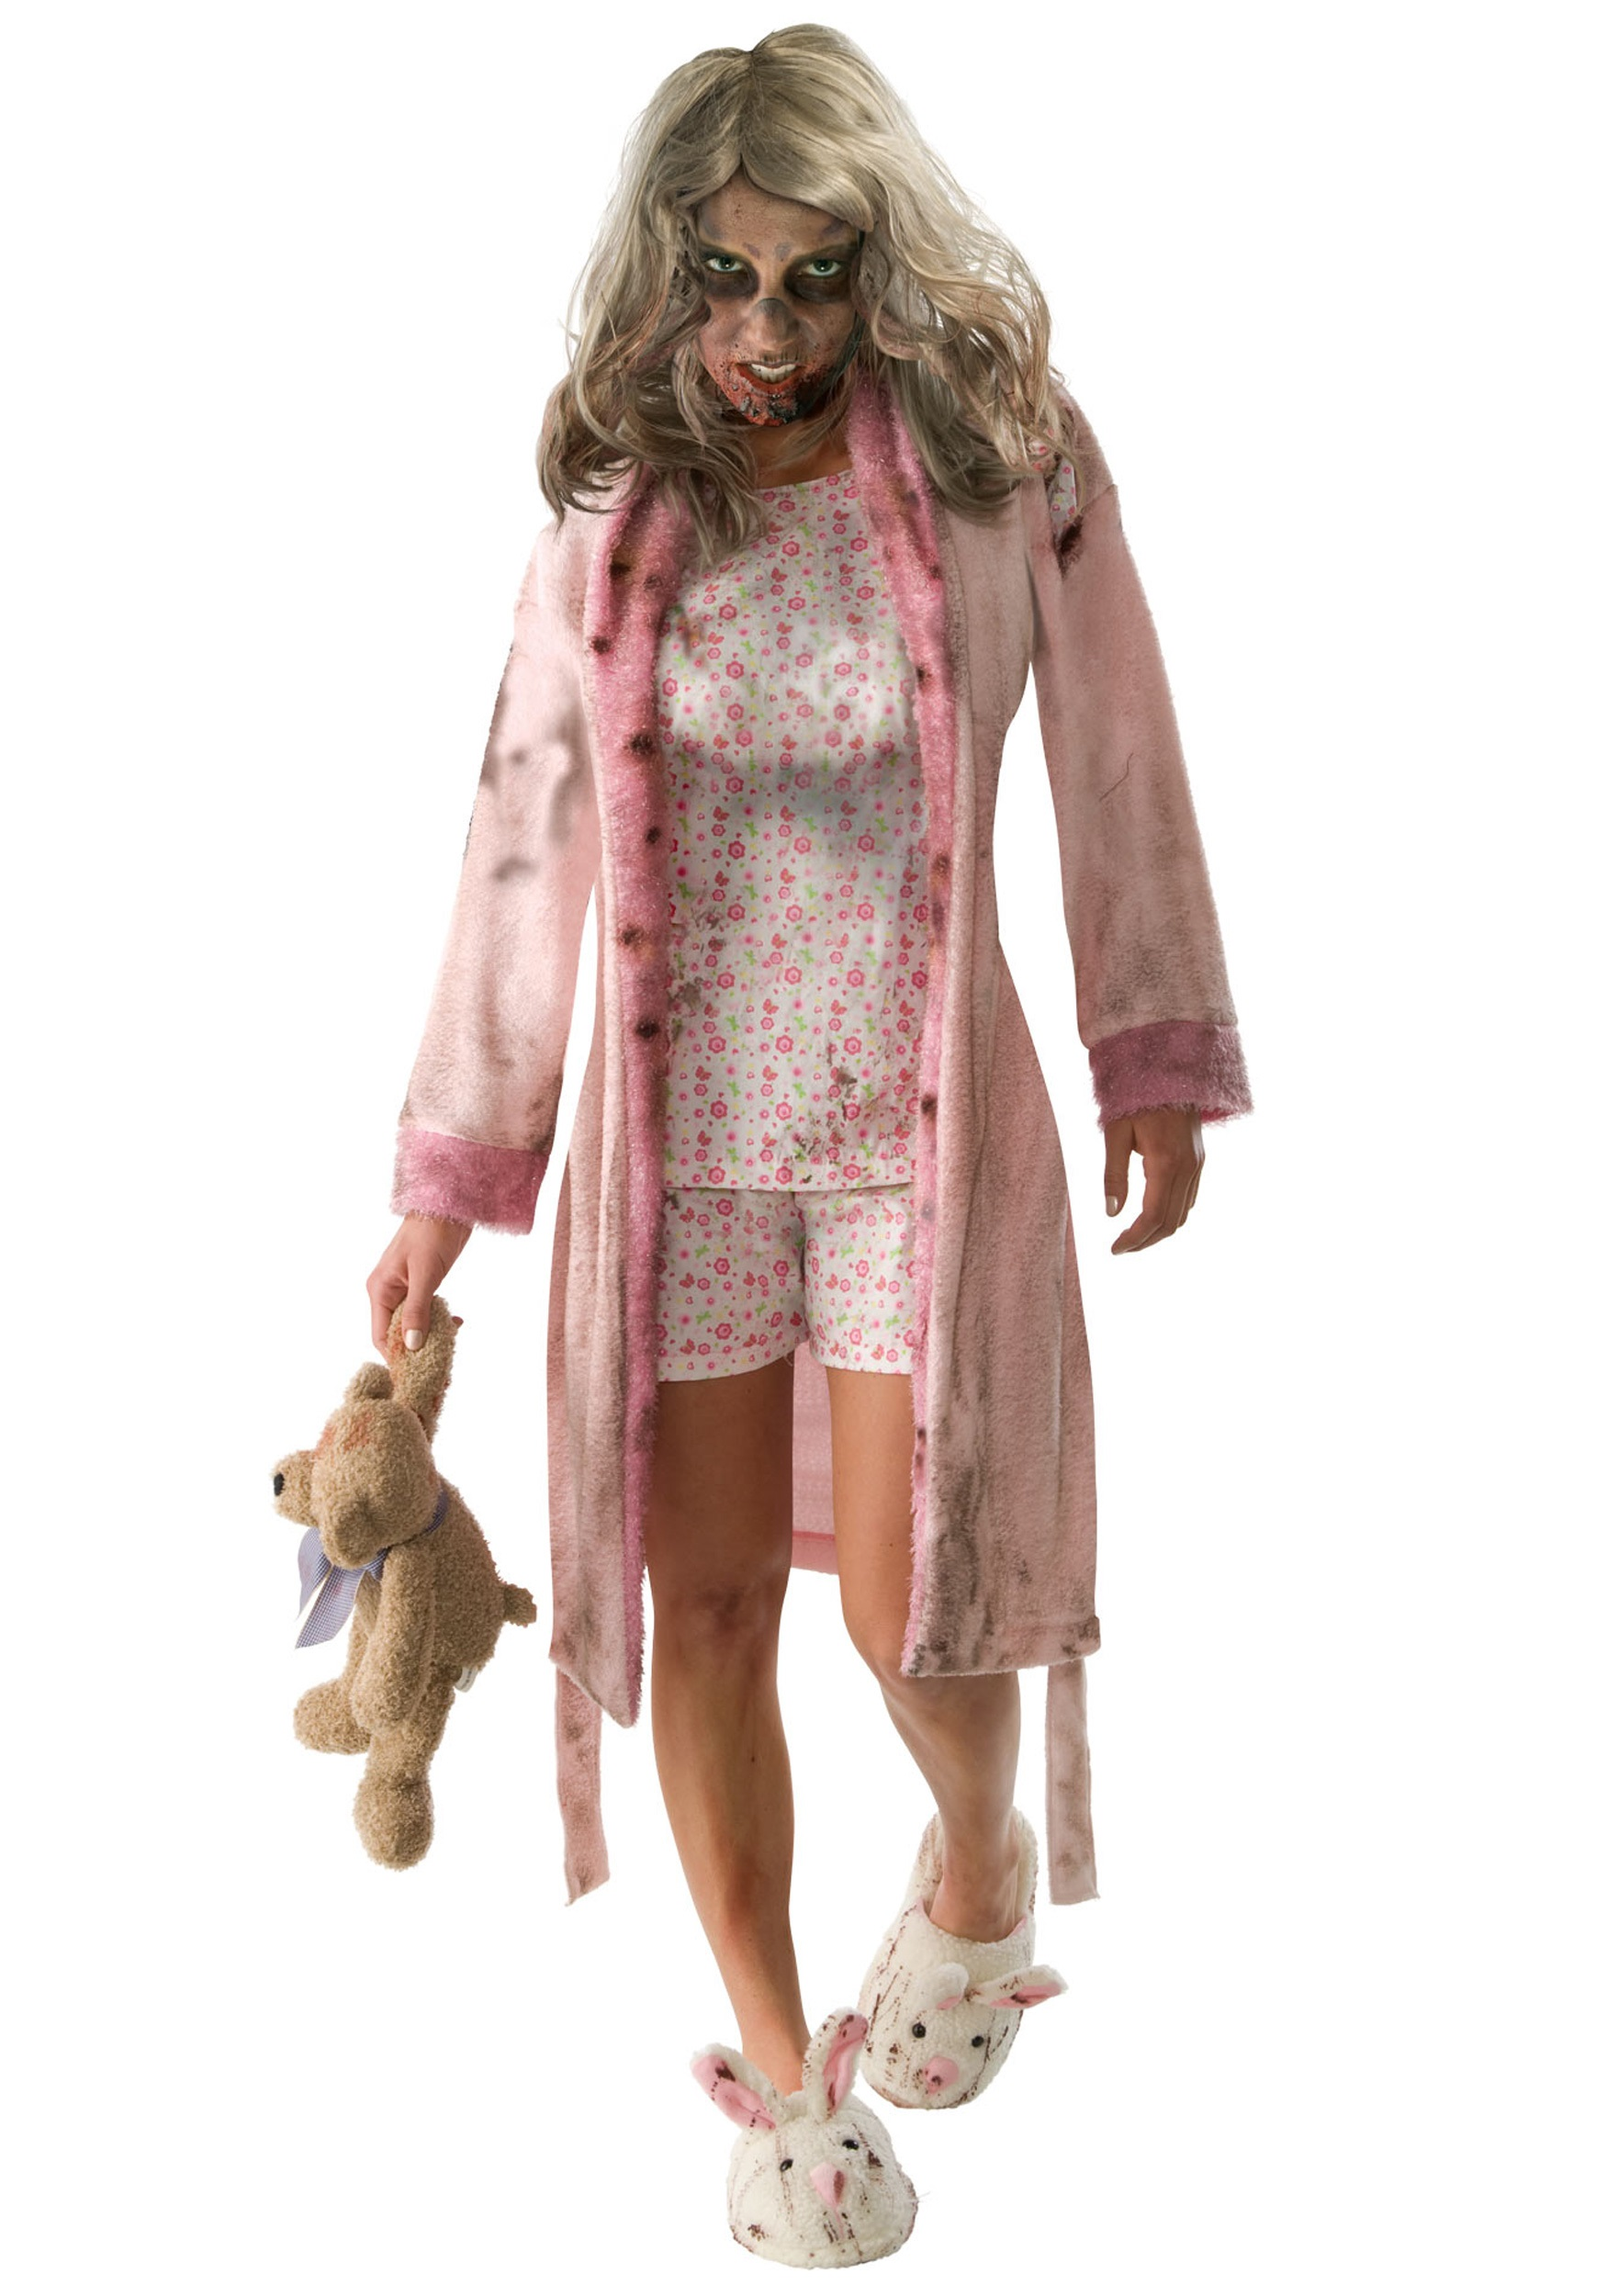 Halloween Zombie Costumes For Girls Zombie Costume Halloween